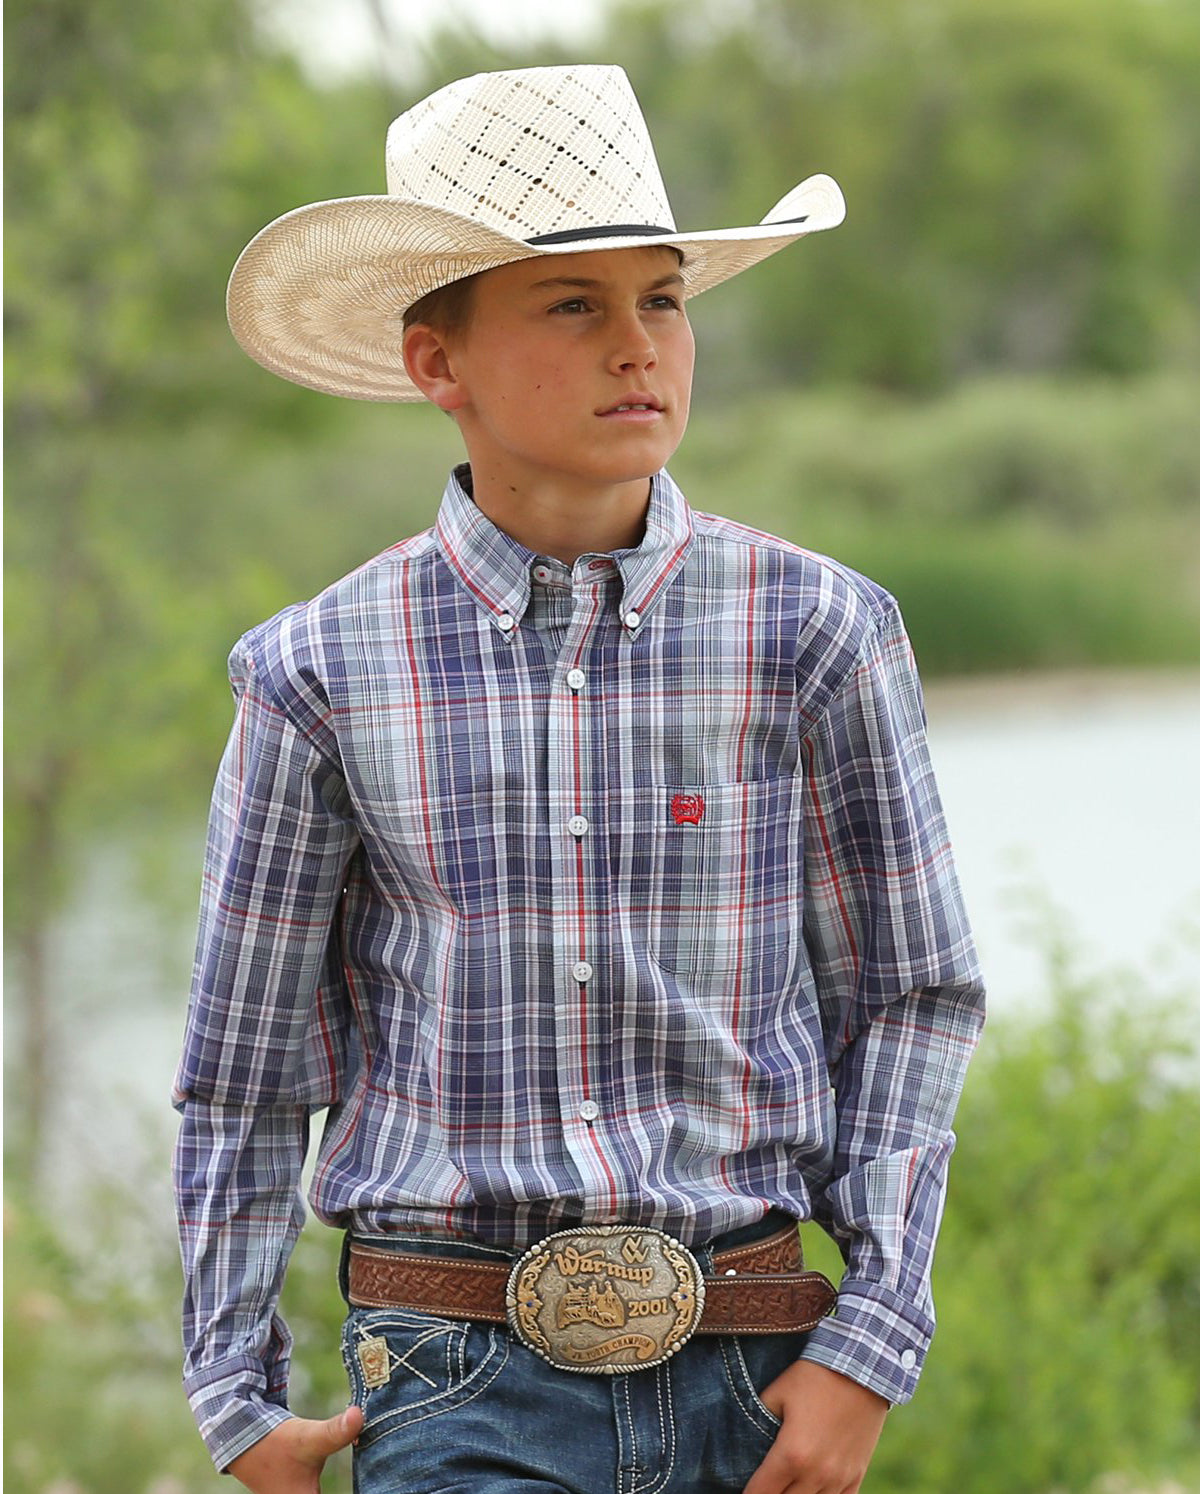 Cinch BLUE AND RED PLAID BUTTON-DOWN WESTERN SHIRT KIDS - Boys - Clothing - Shirts - Long Sleeve Shirts CINCH Teskeys